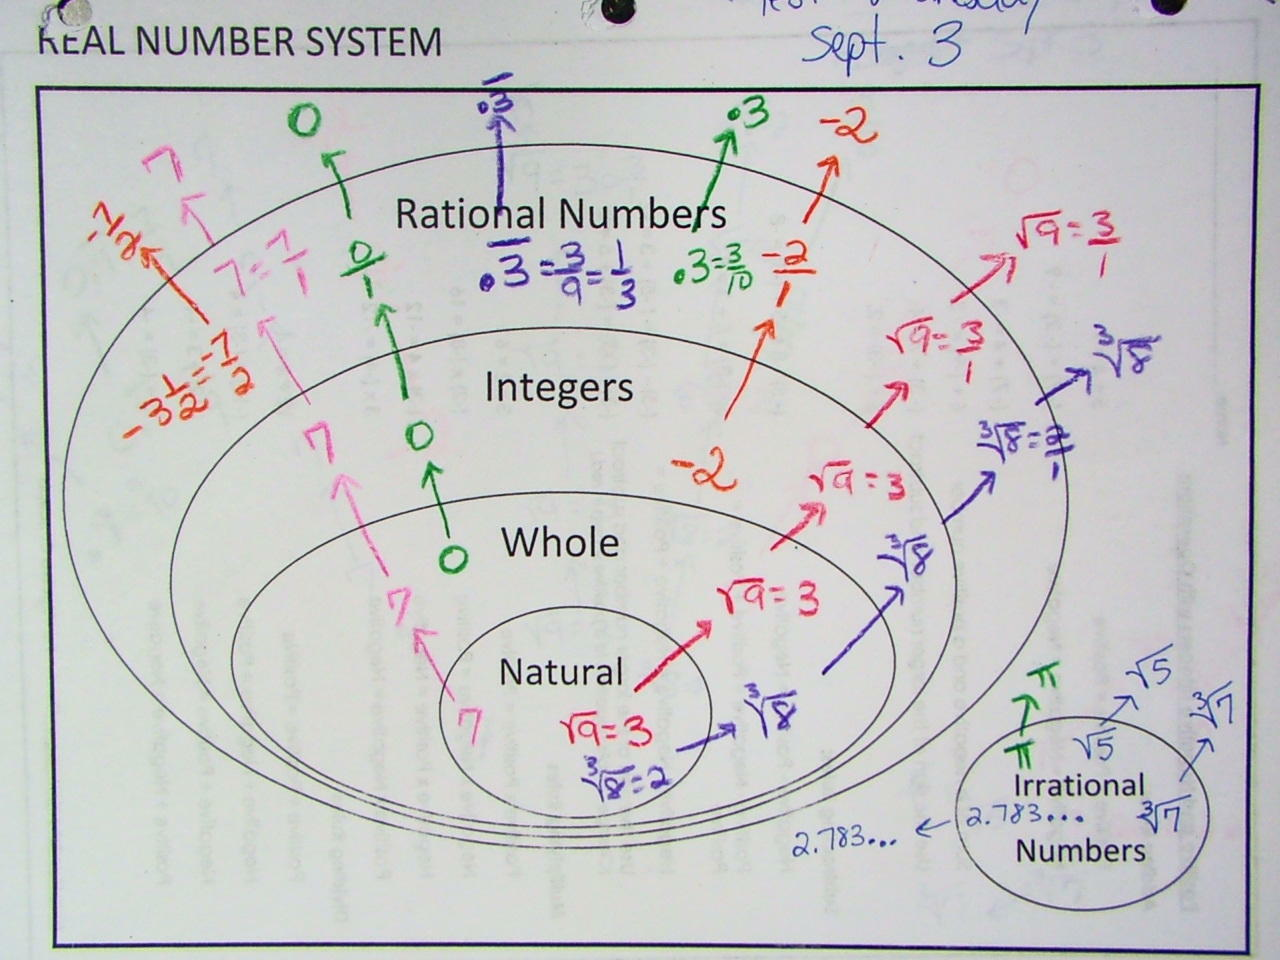 venn diagram of the number system parts a sheep irrational numbers 3 set